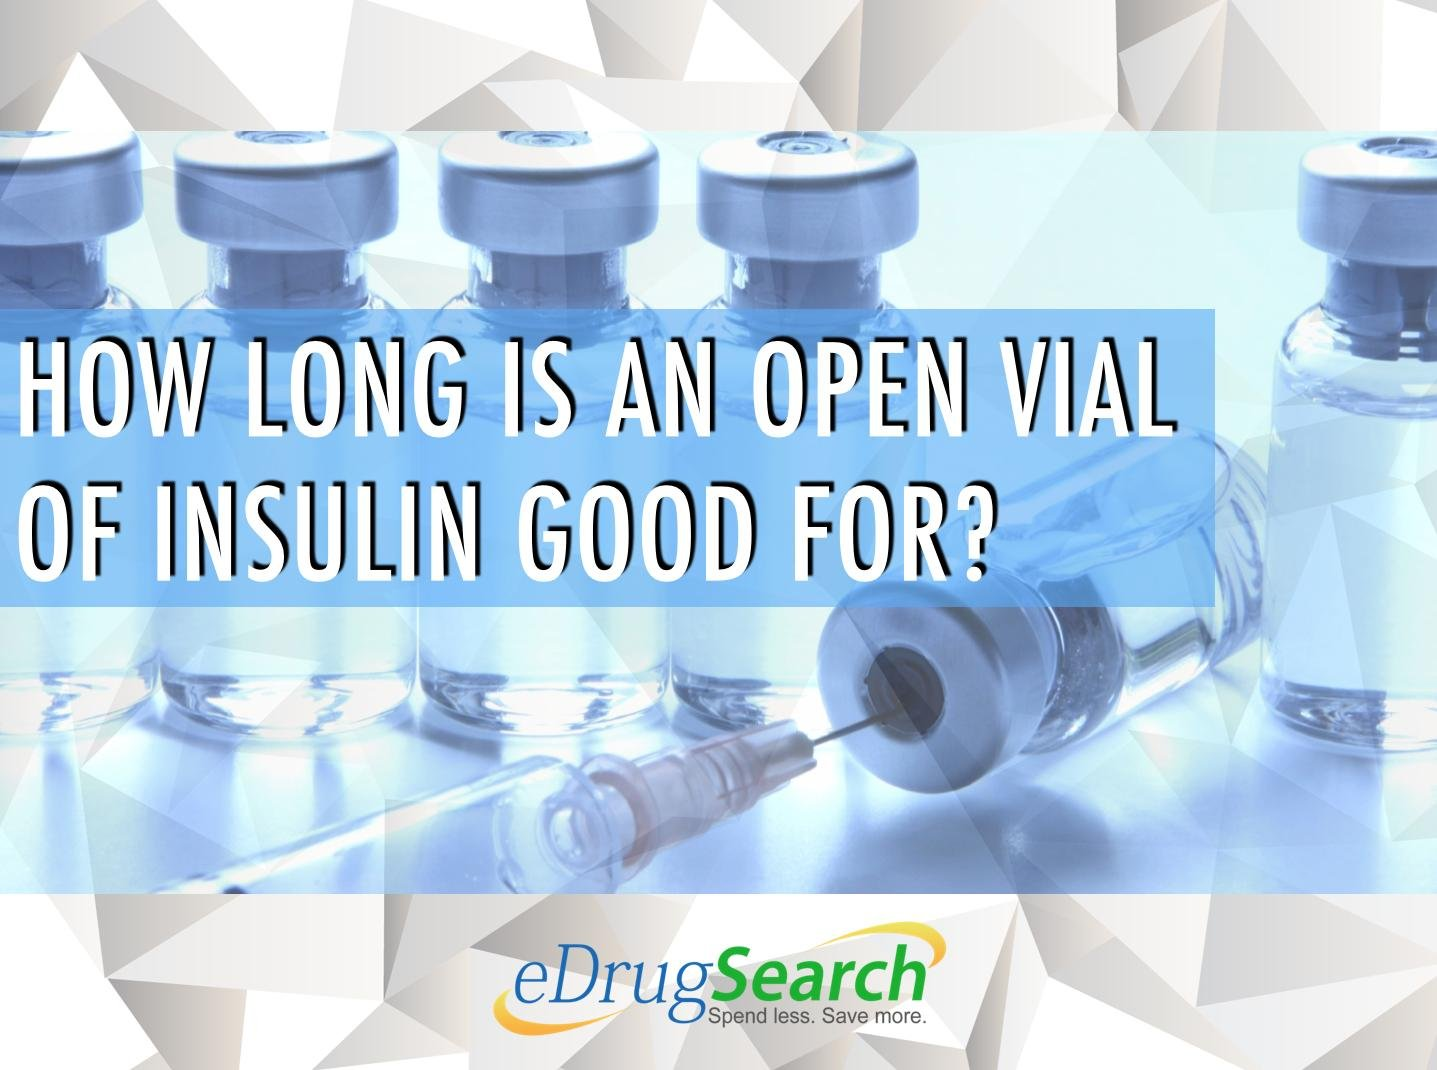 How Long Is An Open Vial Of Insulin Good For?